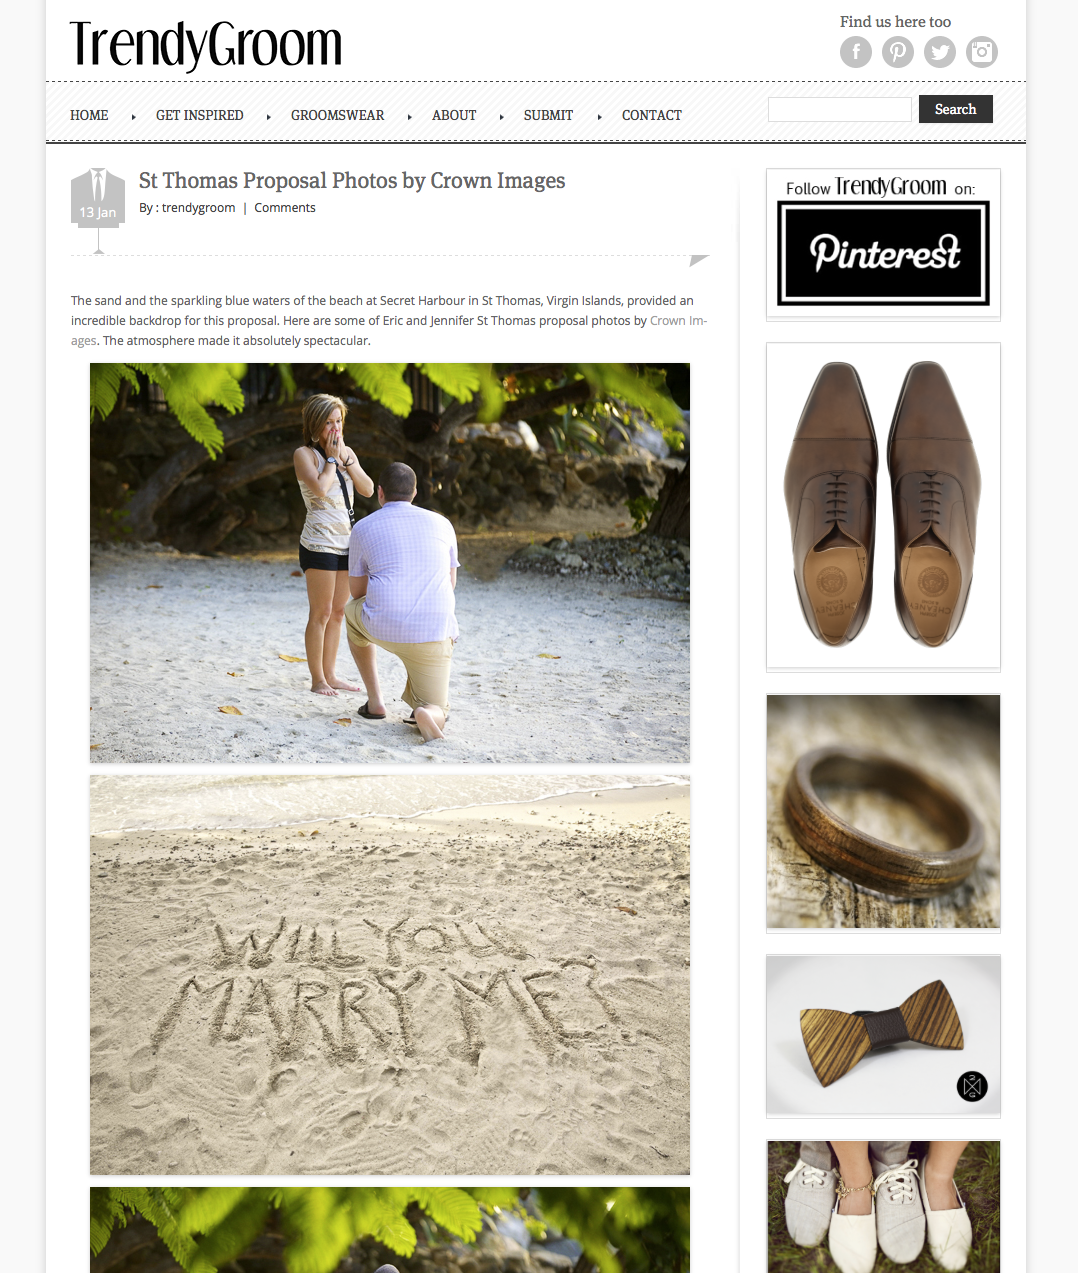 crown images photos featured on trendy groom